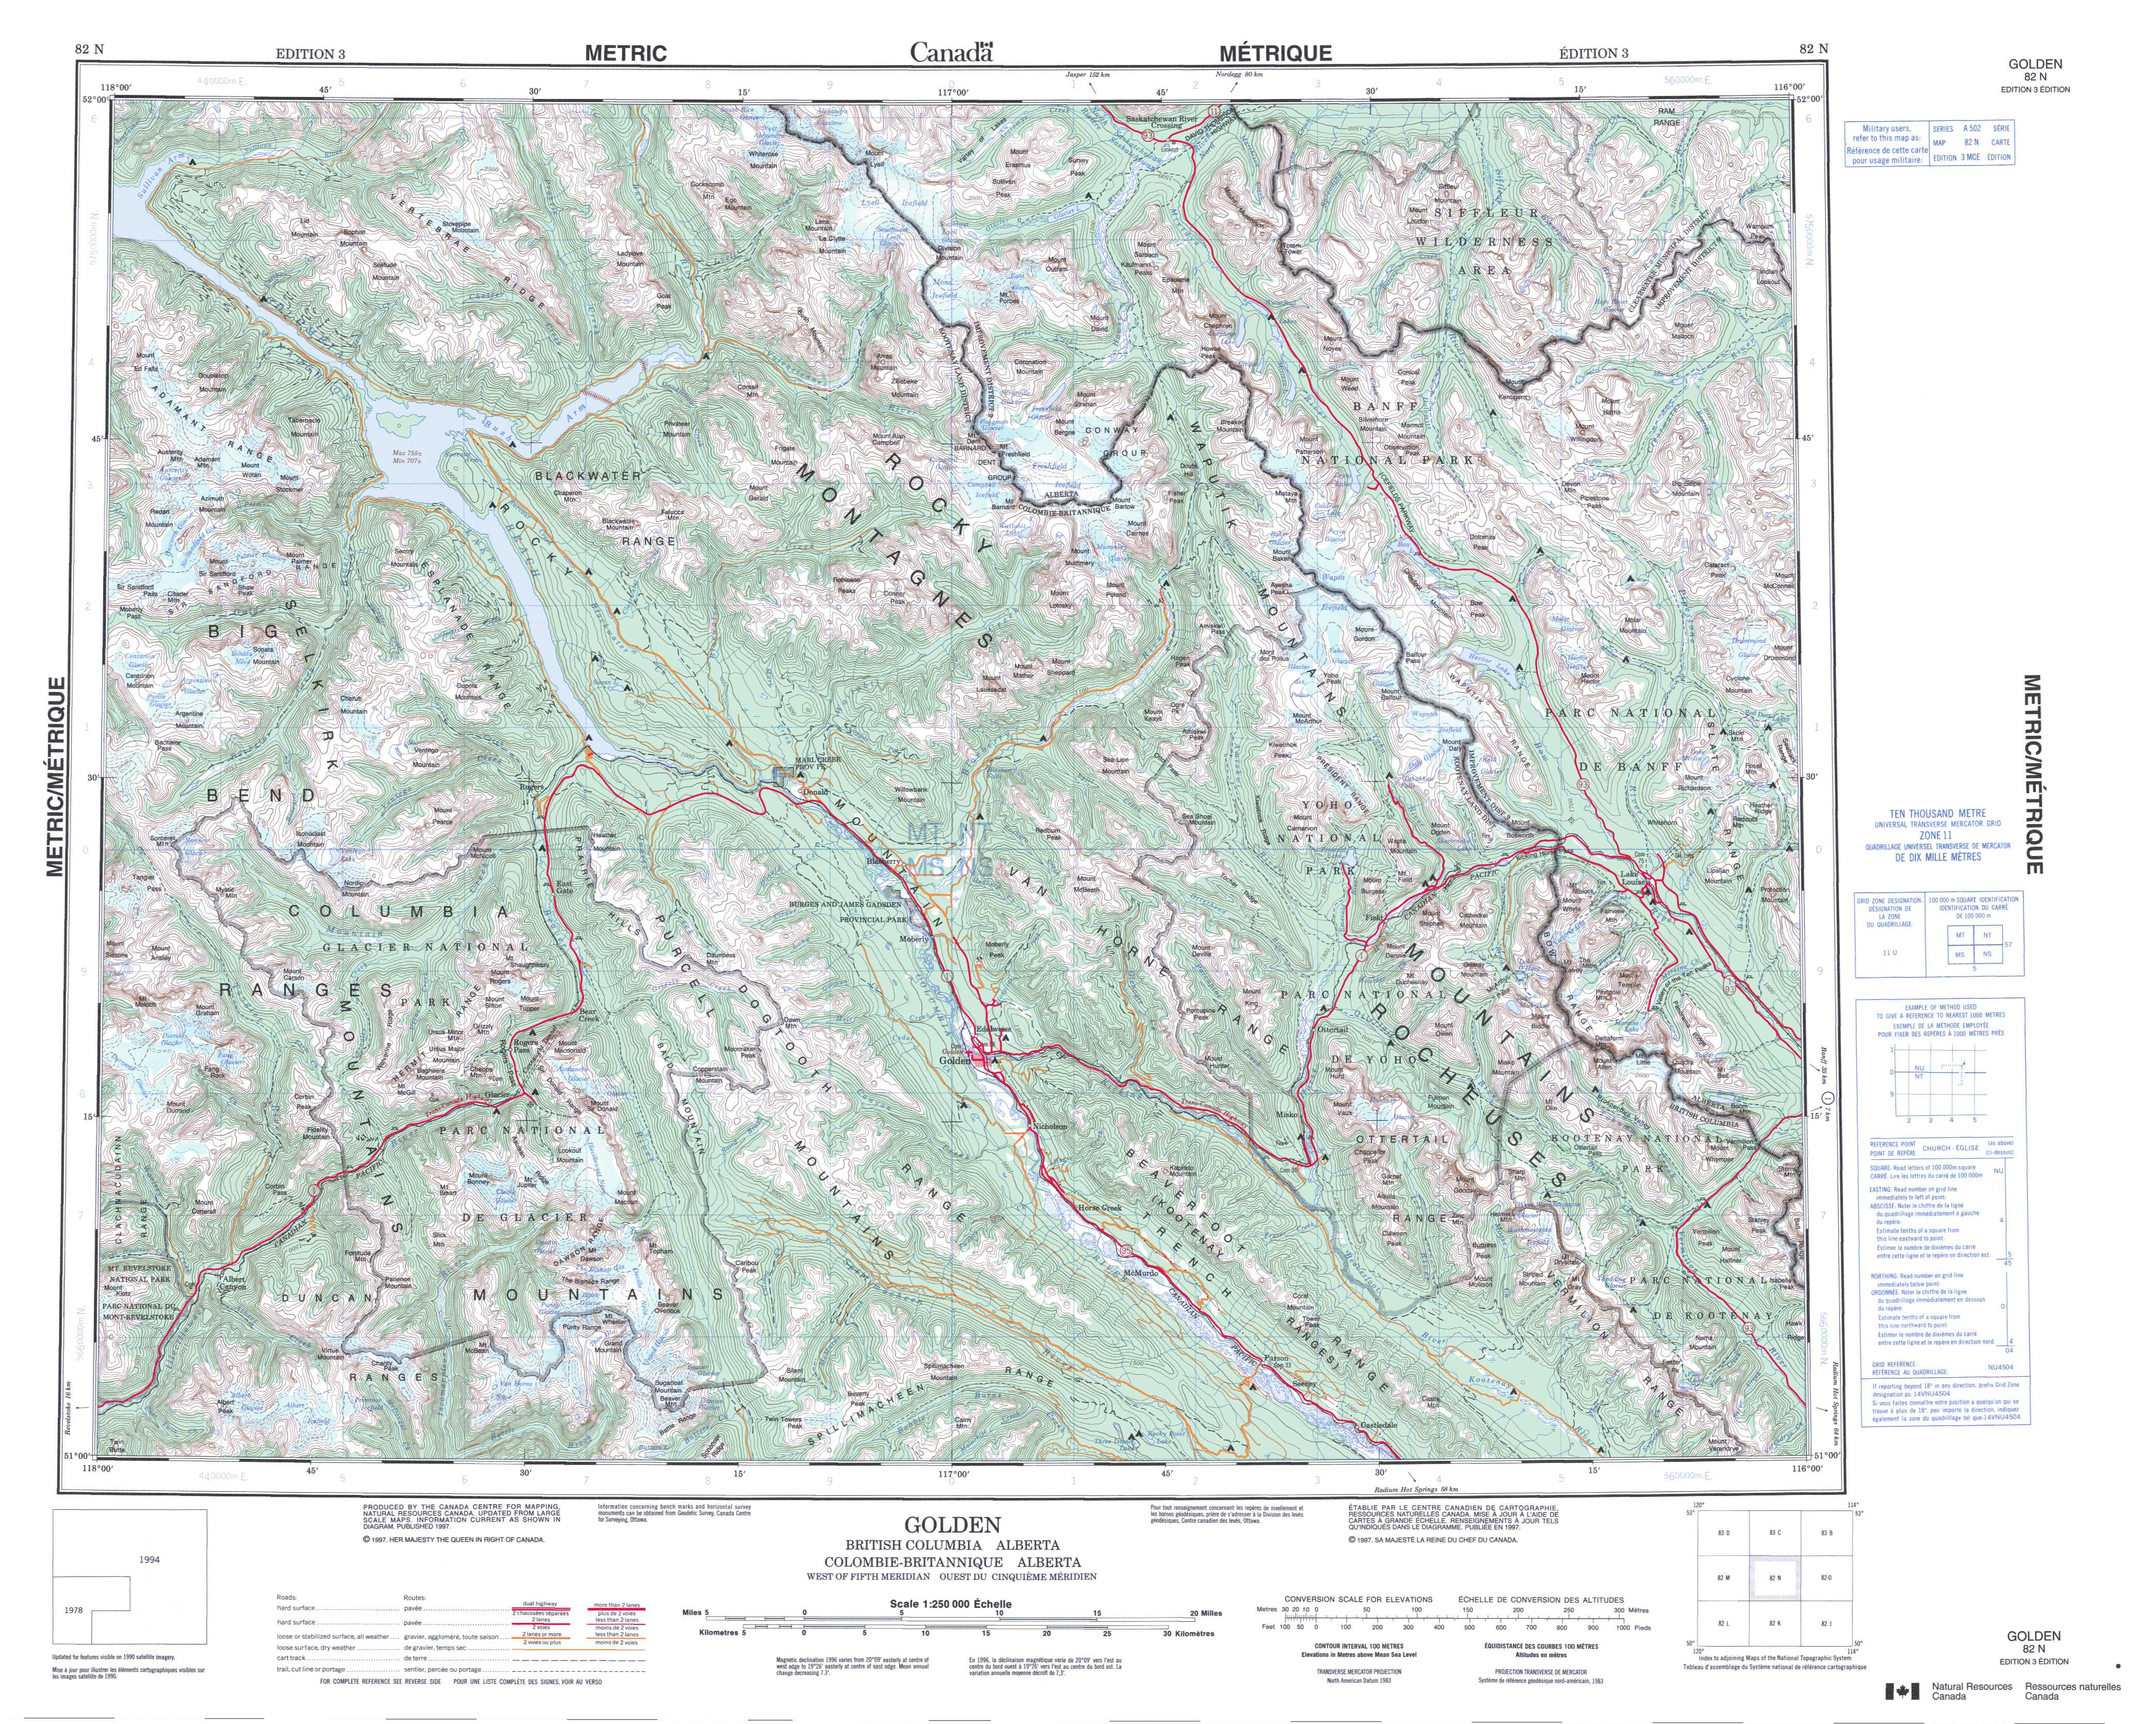 Printable Topographic Map Of Golden 082N, Ab - Free Printable Topo Maps